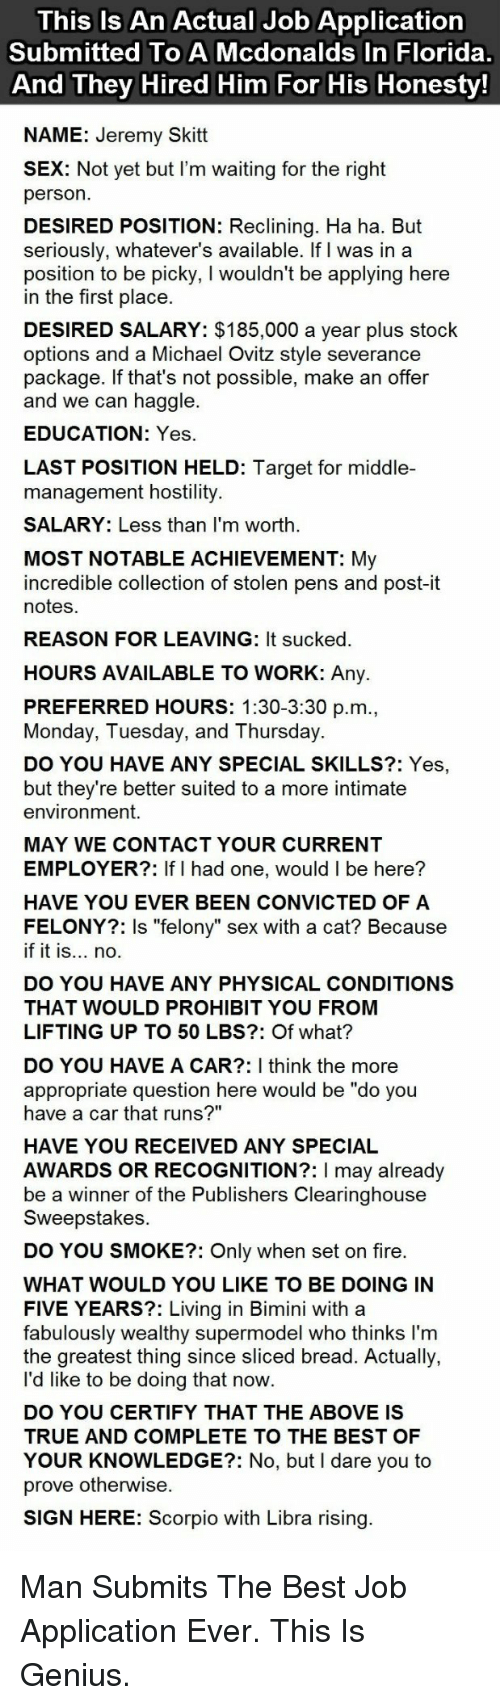 """Sign Here: This Is An Actual Job Application  Submitted To A Mcdonalds In Florida  And They Hired Him For His Honesty  NAME: Jeremy Skitt  X: Not yet but I'm waiting for the right  person  DESIRED POSITION: Reclining. Ha ha. But  seriously, whatever's available. If I was in a  position to be picky, I wouldn't be applying here  in the first place  DESIRED SALARY: $185,000 a year plus stock  options and a Michael Ovitz style severance  package. If that's not possible, make an offer  and we can haggle.  EDUCATION: Yes  LAST POSITION HELD: Target for middle-  management hostility  SALARY: Less than I'm worth  MOST NOTABLE ACHIEVEMENT: My  incredible collection of stolen pens and post-it  notes  REASON FOR LEAVING: It sucked  HOURS AVAILABLE TO WORK: Any.  PREFERRED HOURS: 1:30-3:30 p.m  Monday, Tuesday, and Thursday.  DO YOU HAVE ANY SPECIAL SKILLS?: Yes,  but they're better suited to a more intimate  environment.  MAY WE CONTACT YOUR CURRENT  EMPLOYER?: If I had one, would I be here?  HAVE YOU EVER BEEN CONVICTED OF A  FELONY?: Is """"felony"""" sex with a cat? Because  if it is... no.  DO YOU HAVE ANY PHYSICAL CONDITIONS  THAT WOULD PROHIBIT YOU FROM  LIFTING UP TO 50 LBS?: Of what?  DO YOU HAVE A CAR?: I think the more  appropriate question here would be """"do you  have a car that runs?""""  HAVE YOU RECEIVED ANY SPECIAL  AWARDS OR RECOGNITION?: I may already  be a winner of the Publishers Clearinghouse  Sweepstakes  DO YOU SMOKE?: Only when set on fire  WHAT WOULD YOU LIKE TO BE DOING IN  FIVE YEARS?: Living in Bimini with a  fabulously wealthy supermodel who thinks I'm  the greatest thing since sliced bread. Actually,  l'd like to be doing that now  DO YOU CERTIFY THAT THE ABOVE IS  TRUE AND COMPLETE TO THE BEST OF  YOUR KNOWLEDGE?: No, but I dare you to  prove otherwise  SIGN HERE: Scorpio with Libra rising <p>Man Submits The Best Job Application Ever. This Is Genius.</p>"""